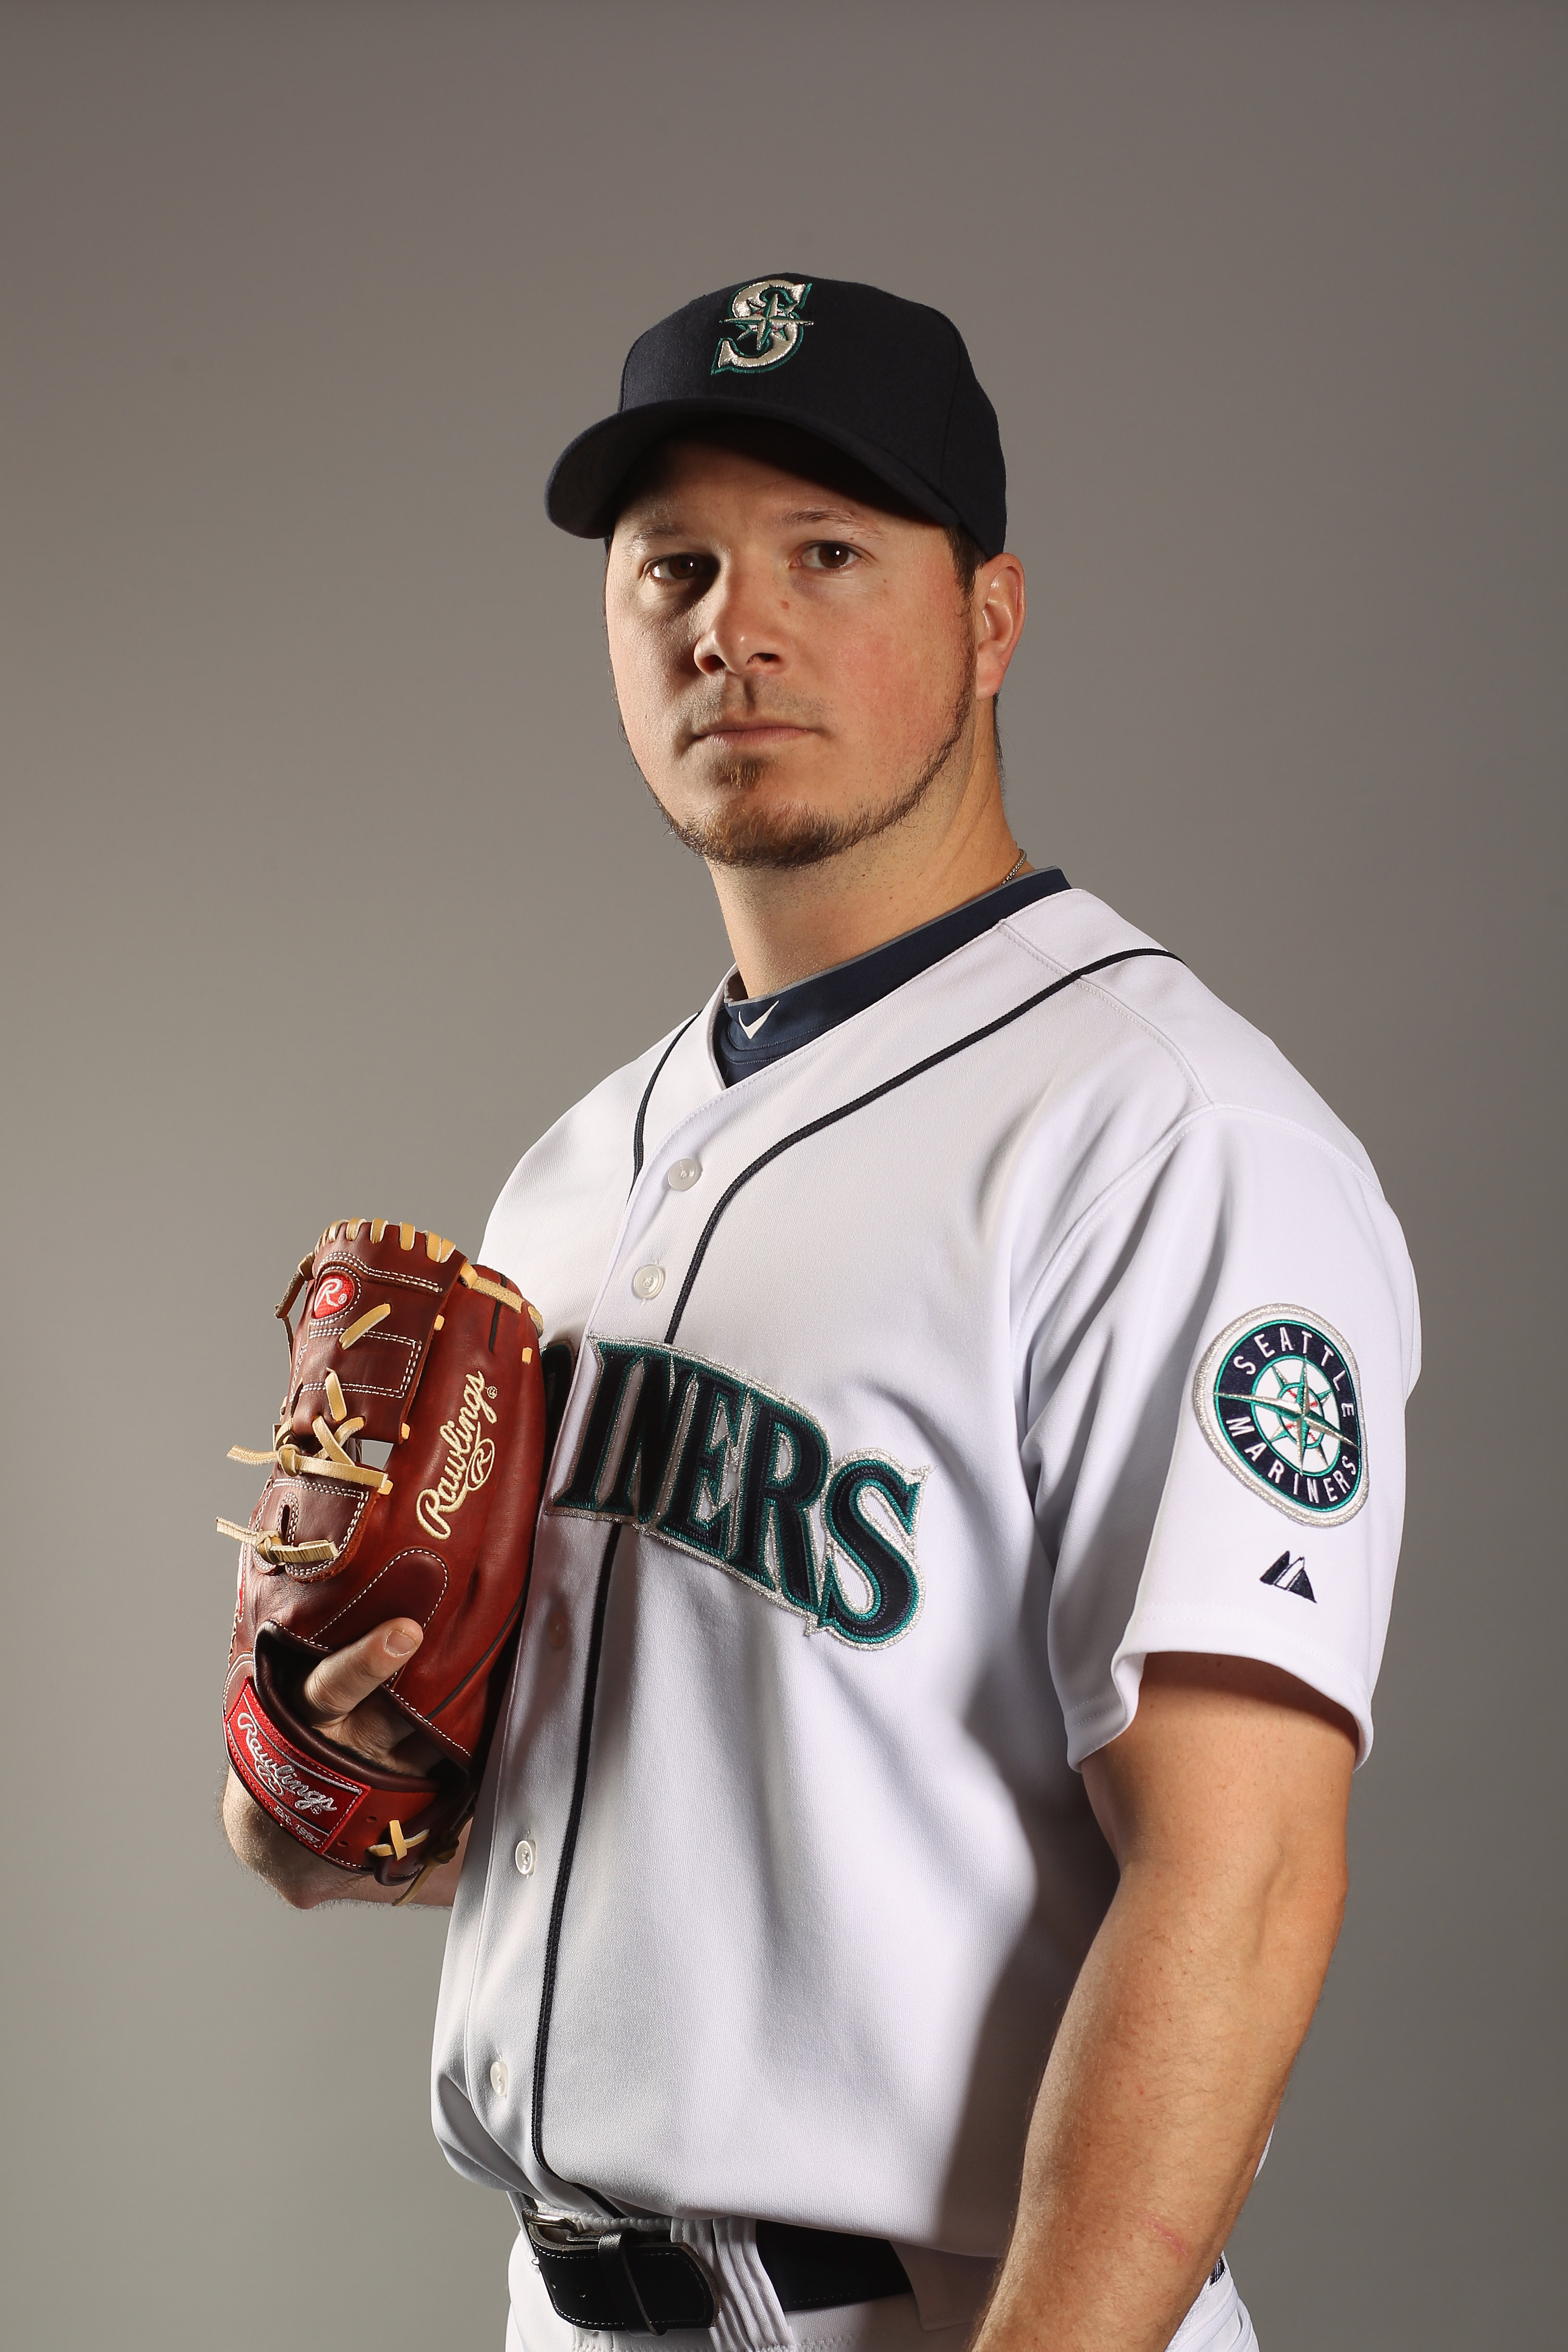 PEORIA, AZ - FEBRUARY 20:  Erik Bedard #45 of the Seattle Mariners poses for a portrait at the Peoria Sports Complex on February 20, 2011 in Peoria, Arizona.  (Photo by Ezra Shaw/Getty Images)